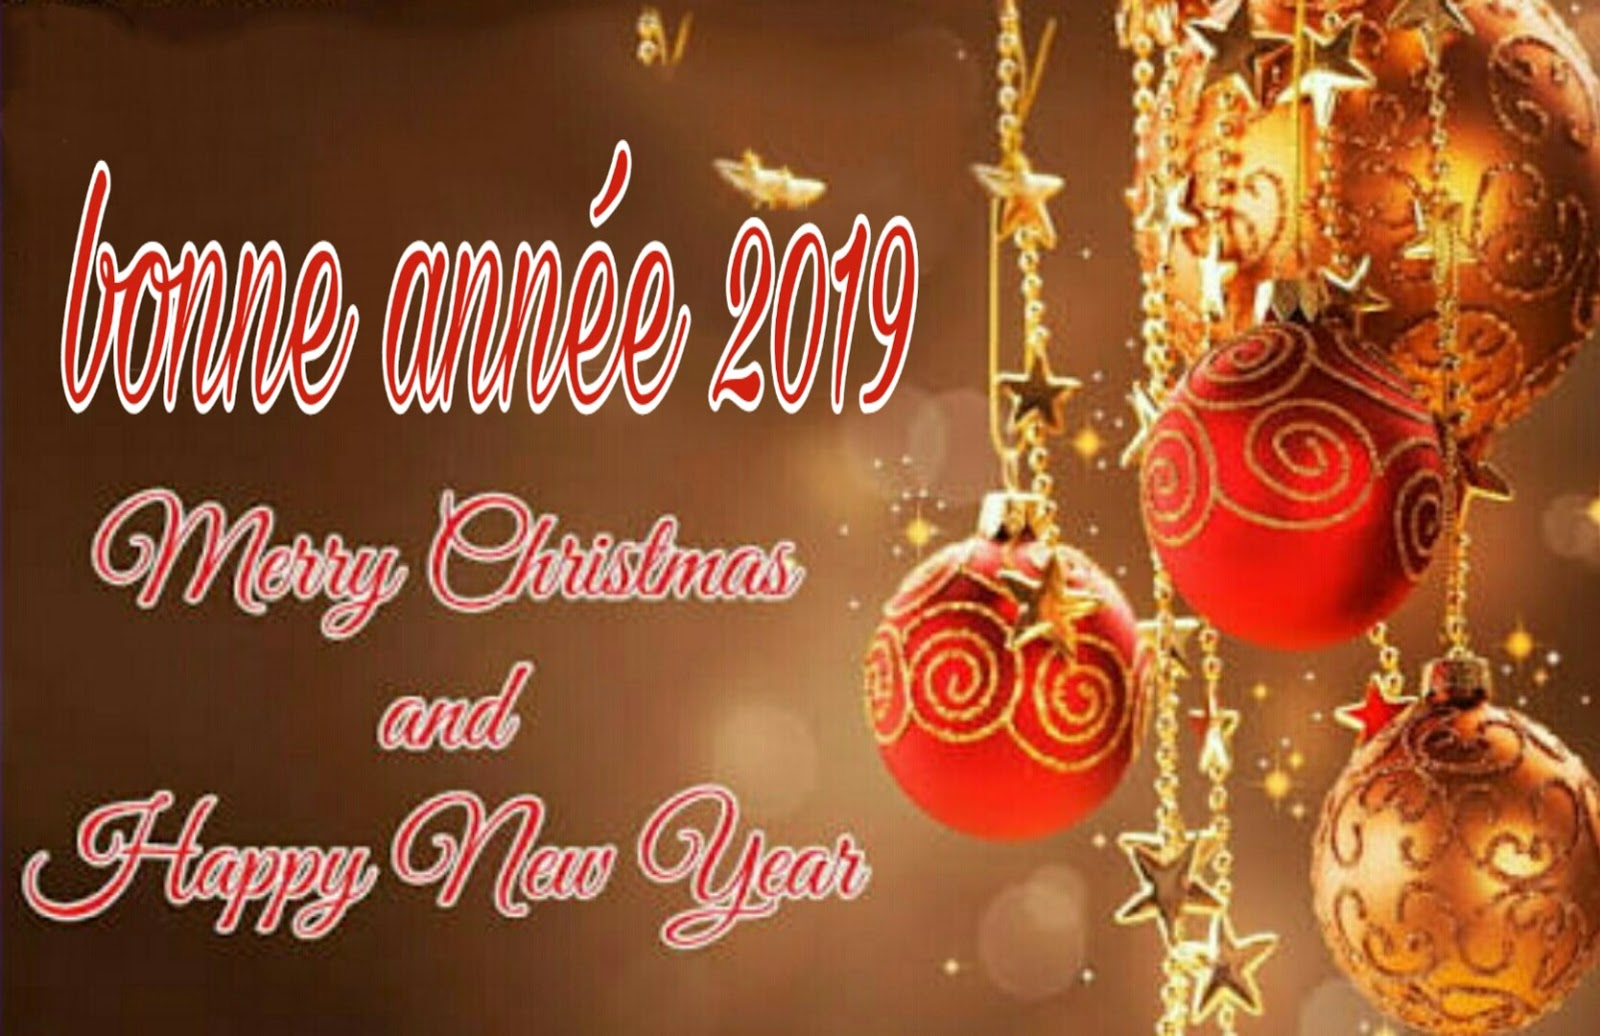 Happy new year wishes in french language 2019 happy new year happy new year in french m4hsunfo